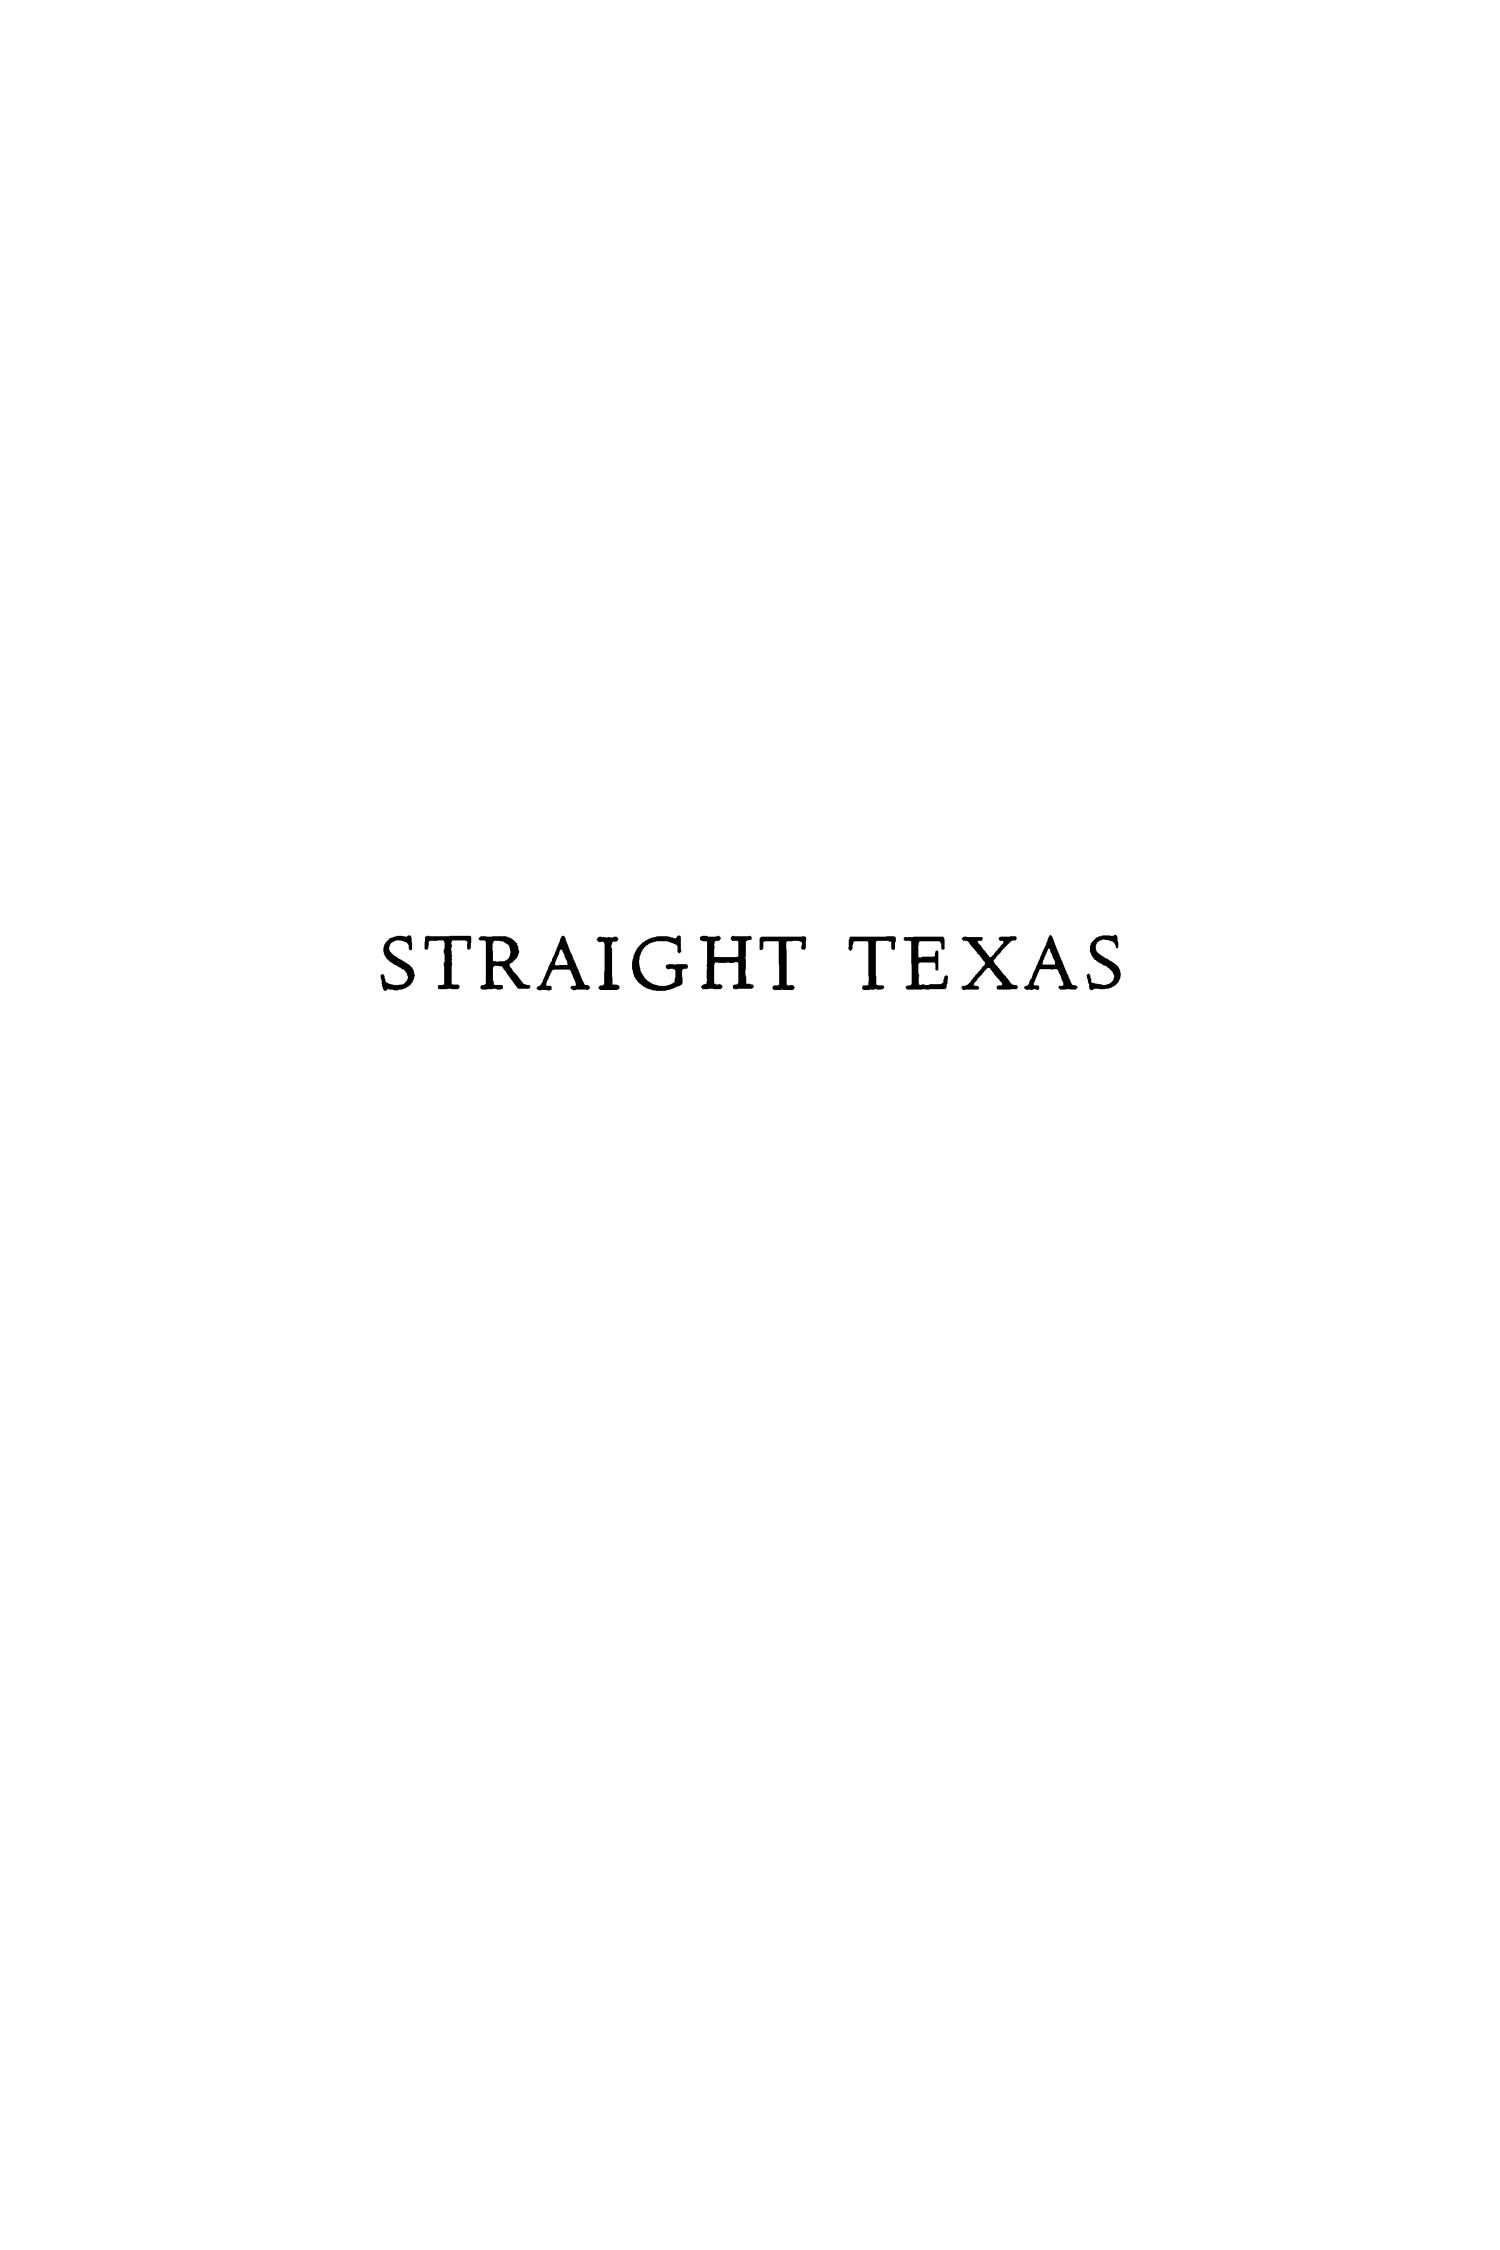 Straight Texas                                                                                                      None